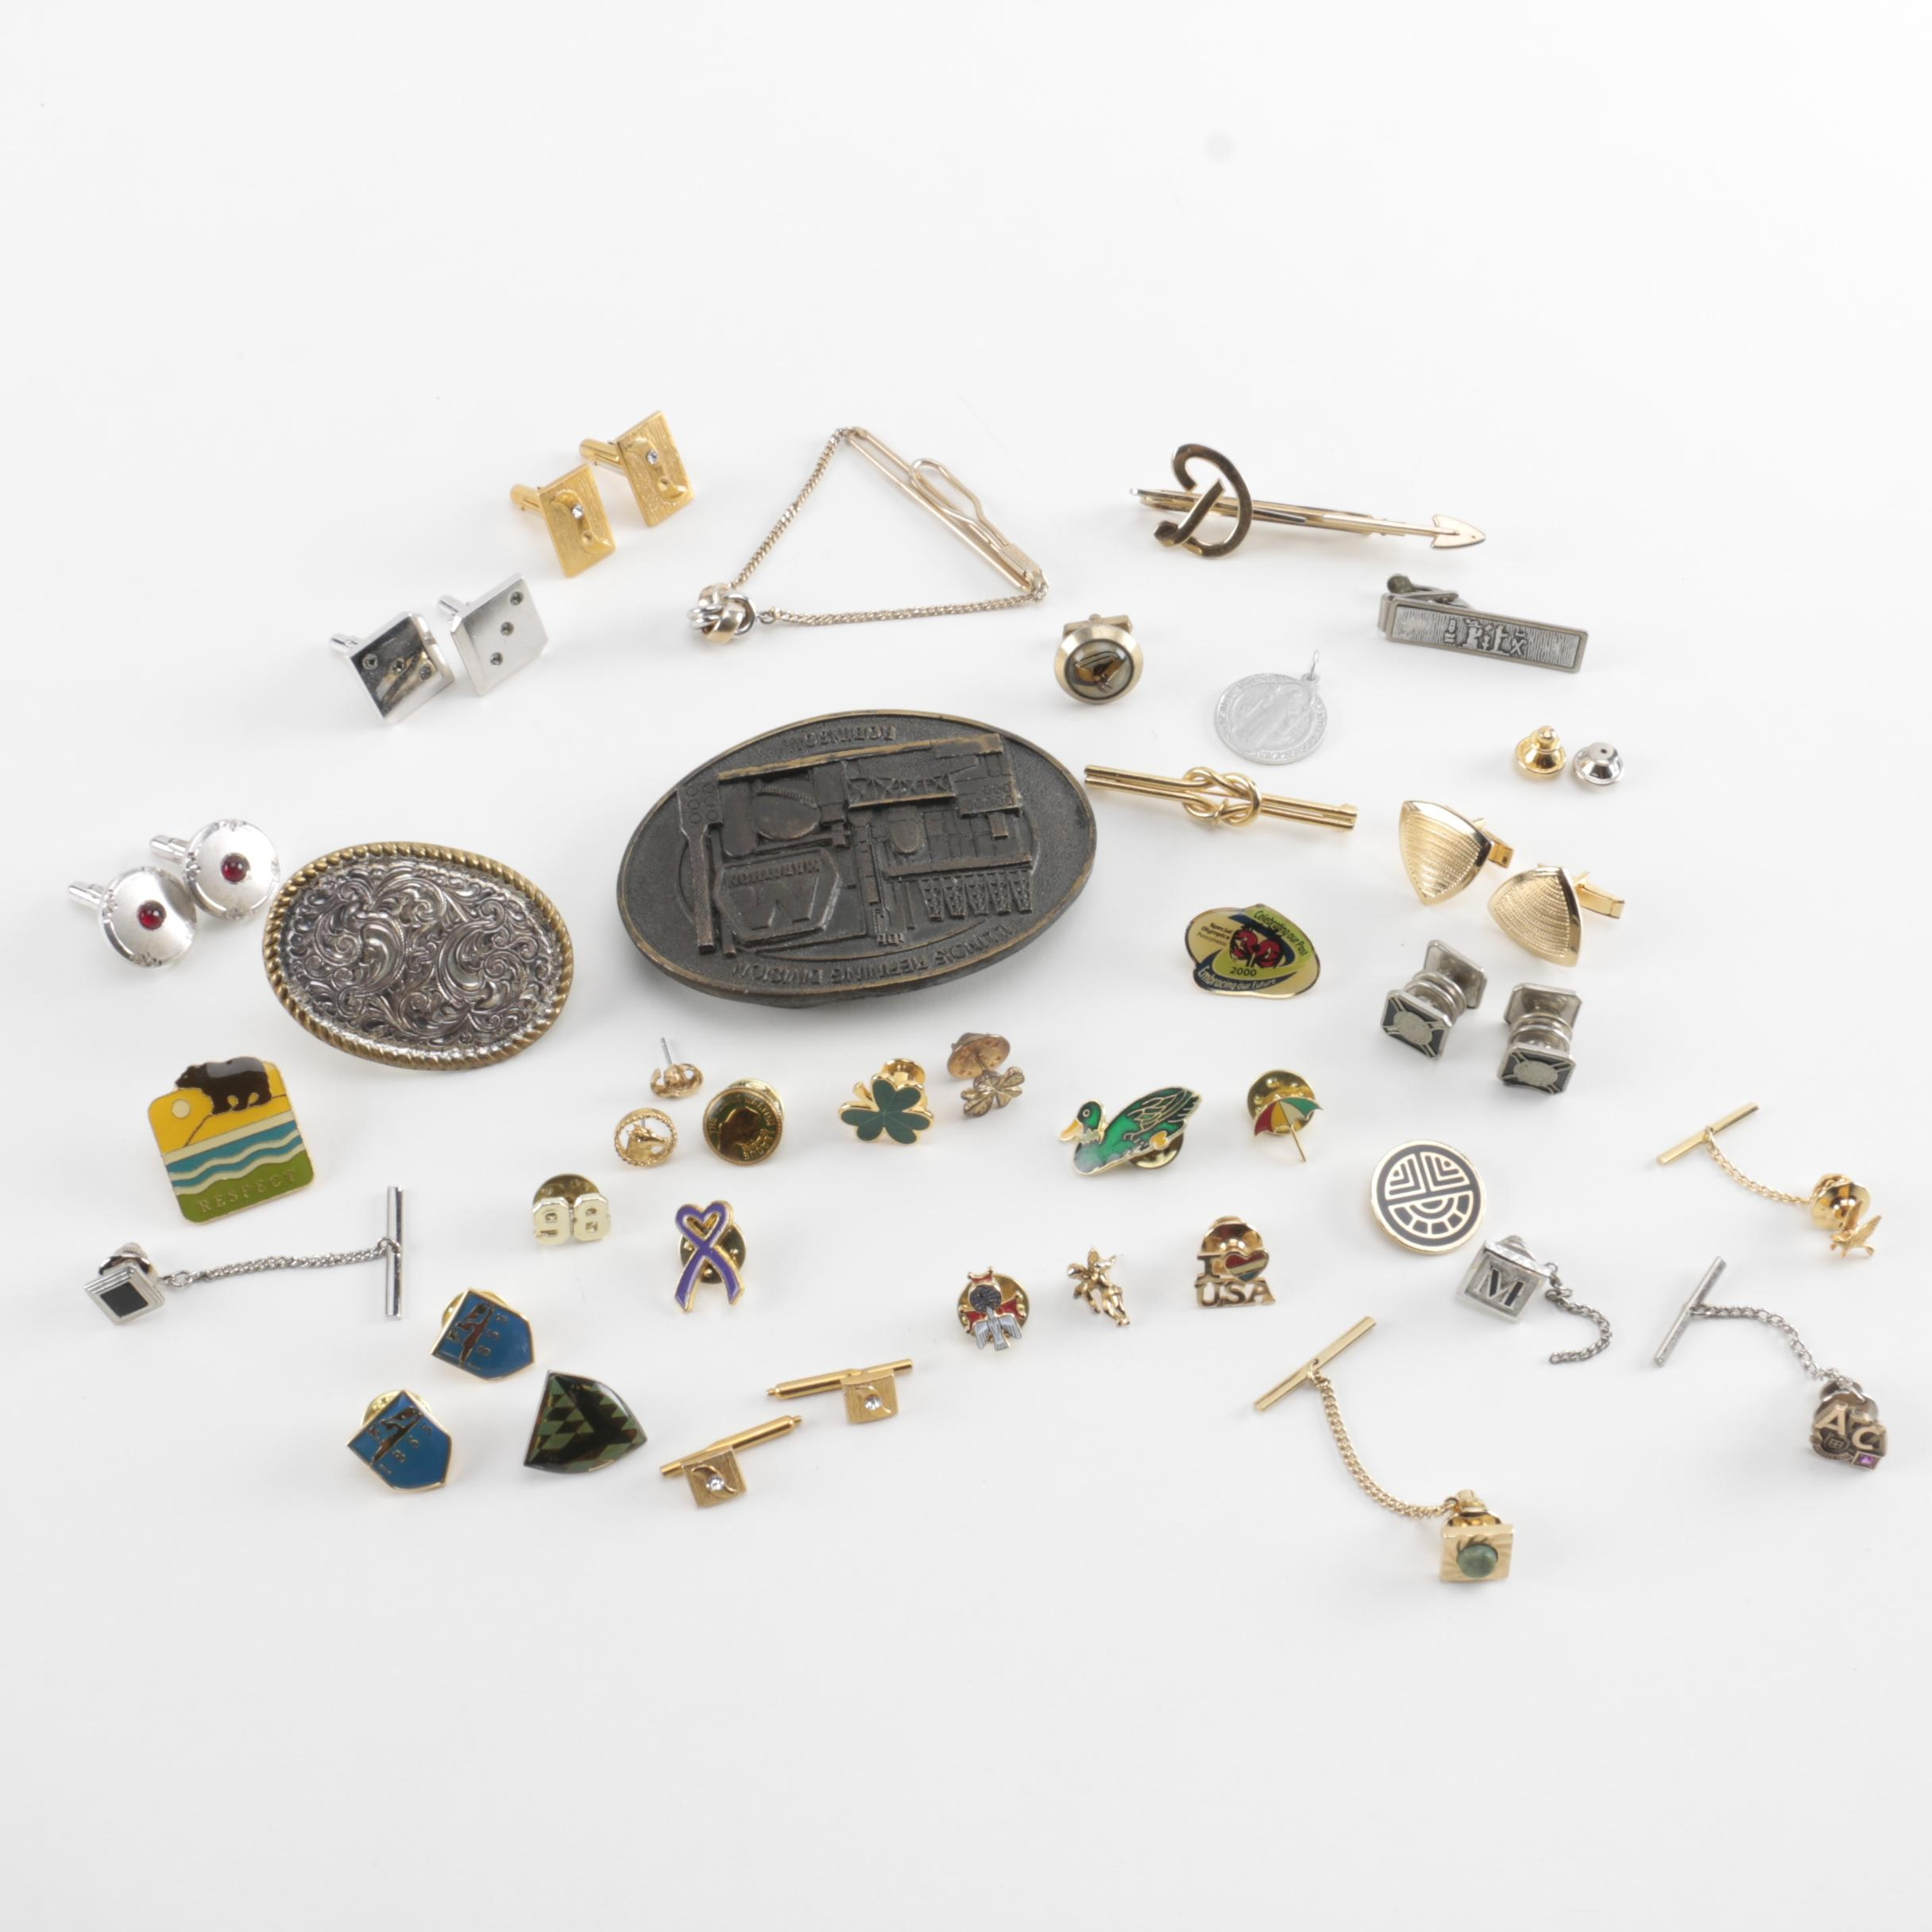 Assorted Cufflinks and Jewelry Including 10K Yellow Gold